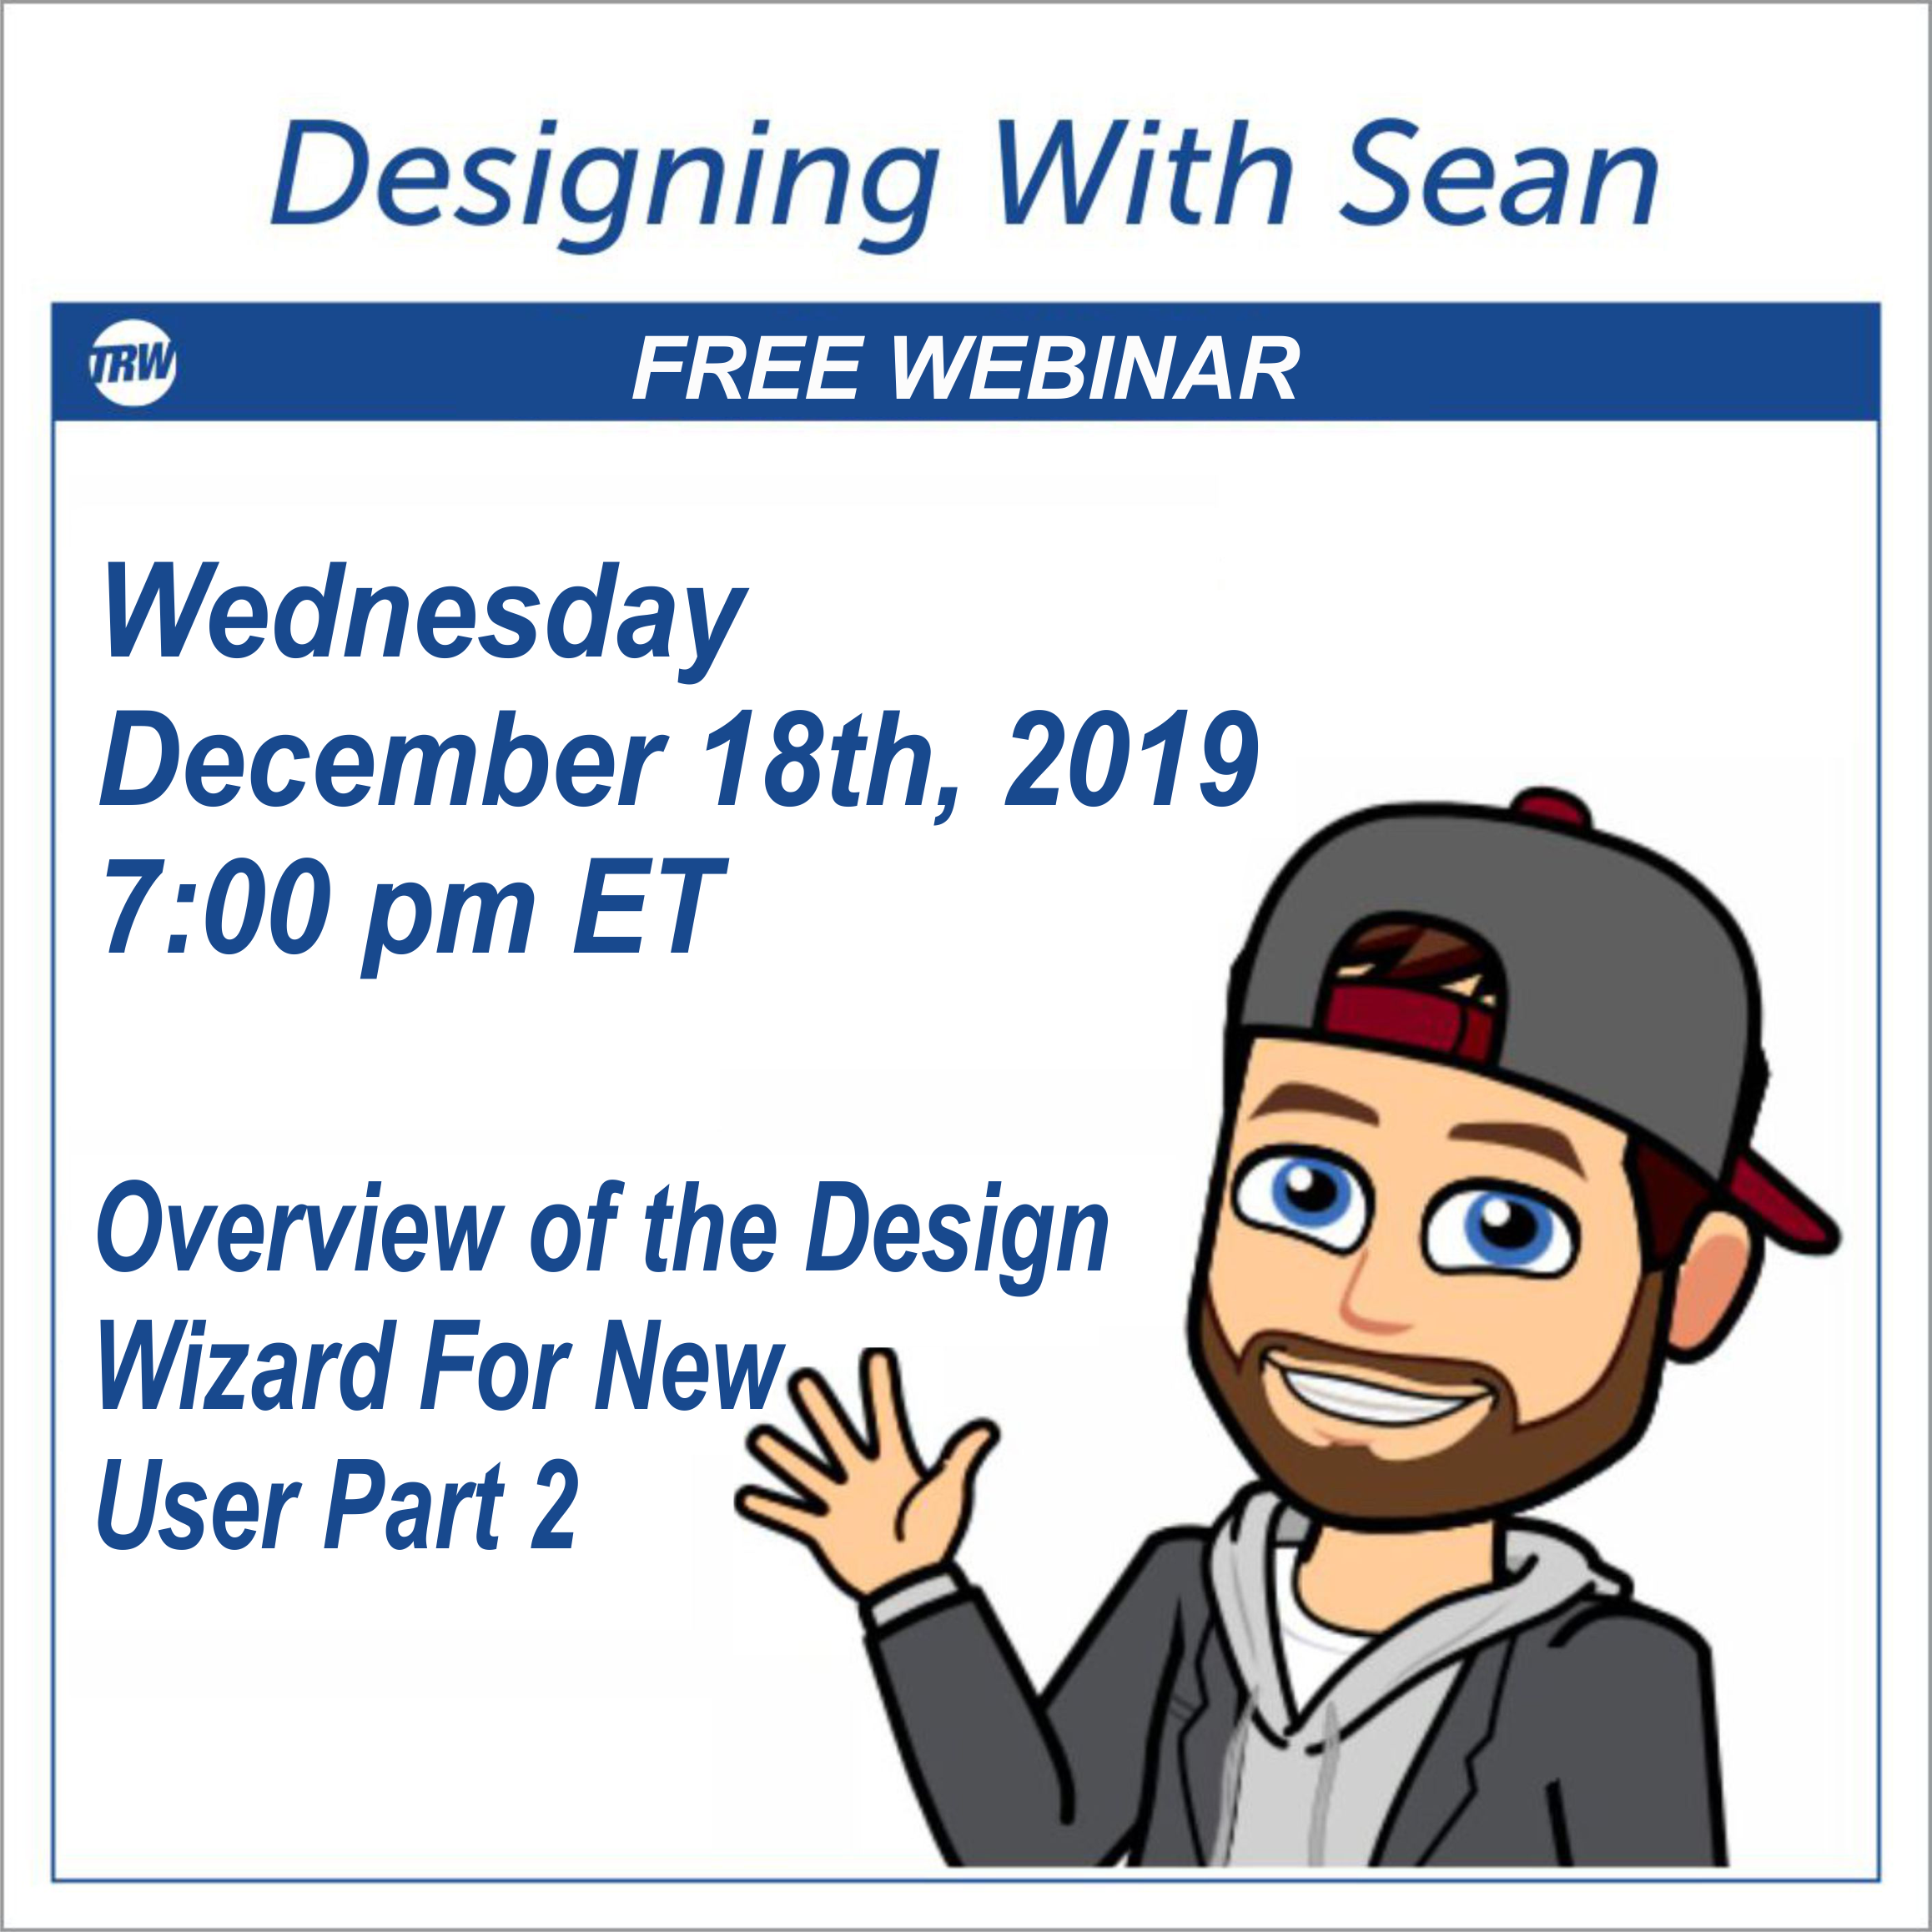 Designing with Sean | Overview of the Design Wizard for New Users Part 2 - December 18th, 2019